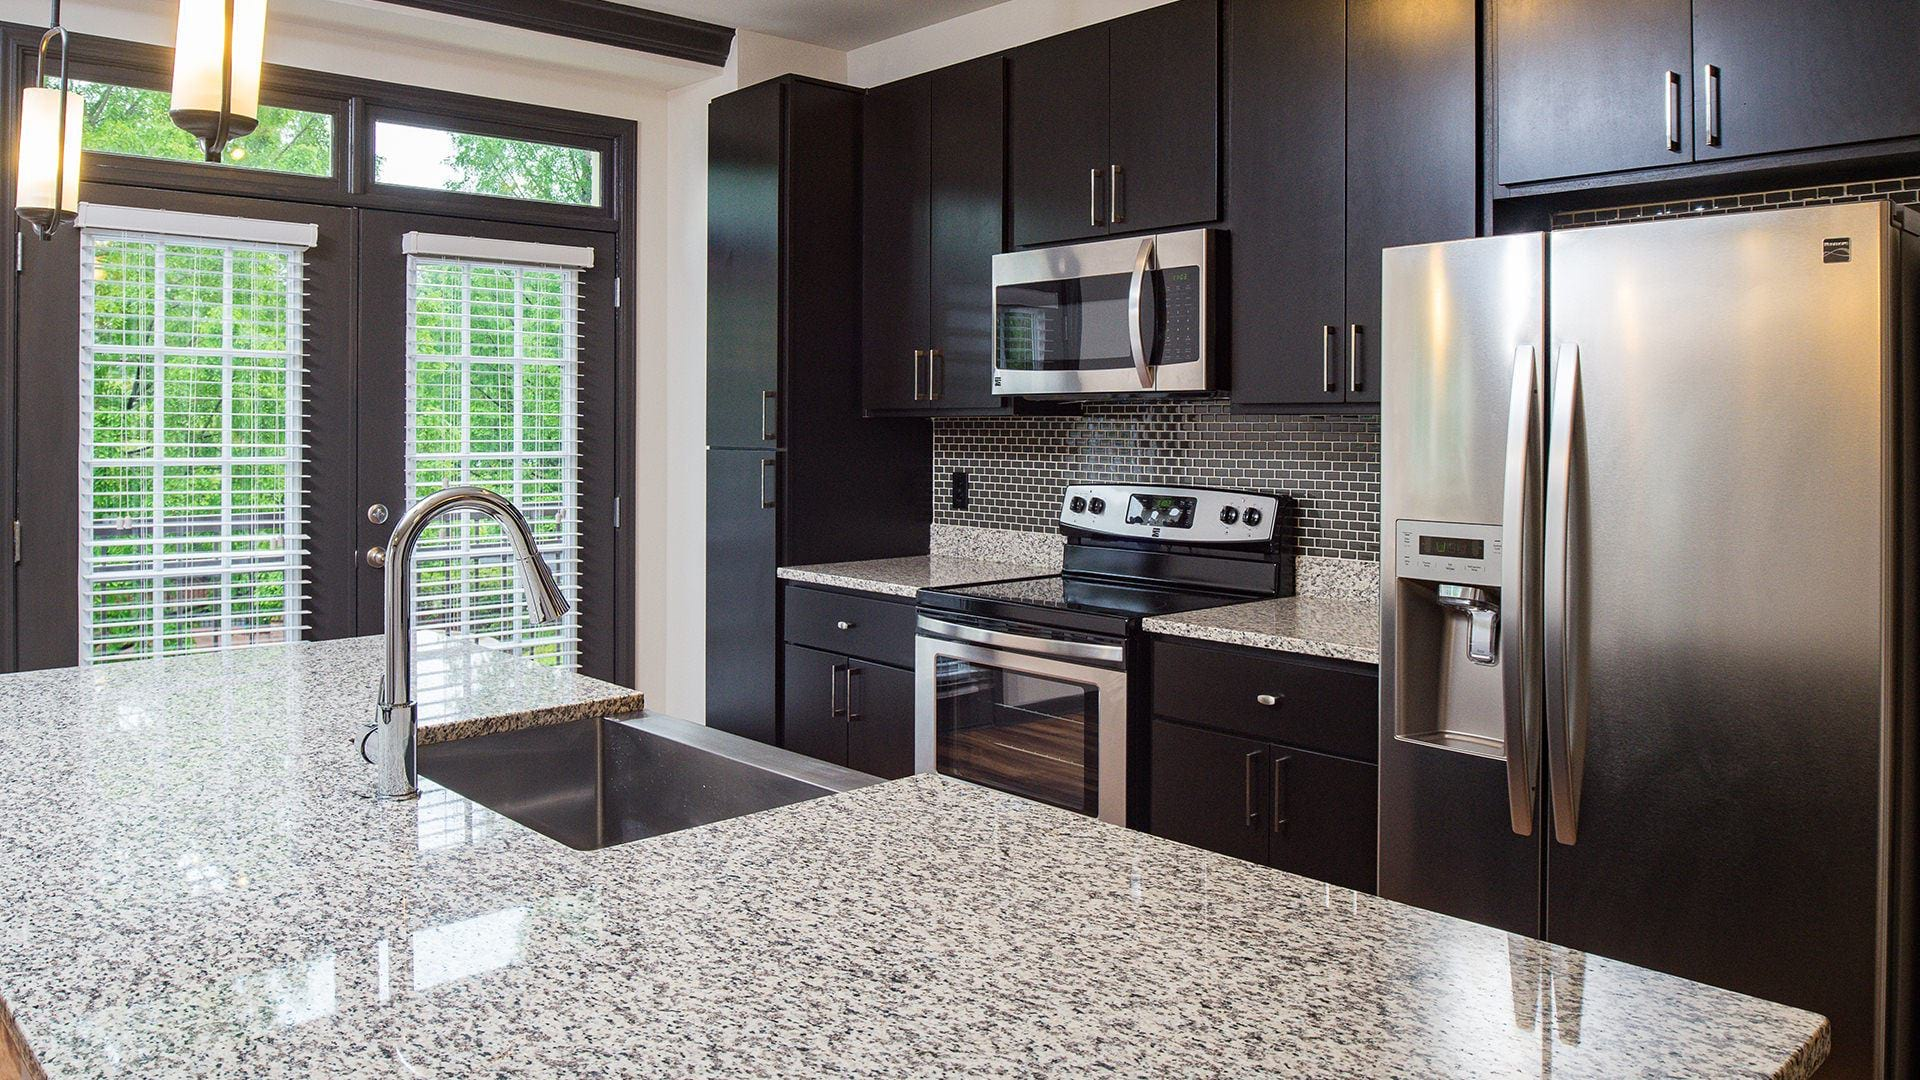 Apartment Kitchen with Sleek Granite Countertops